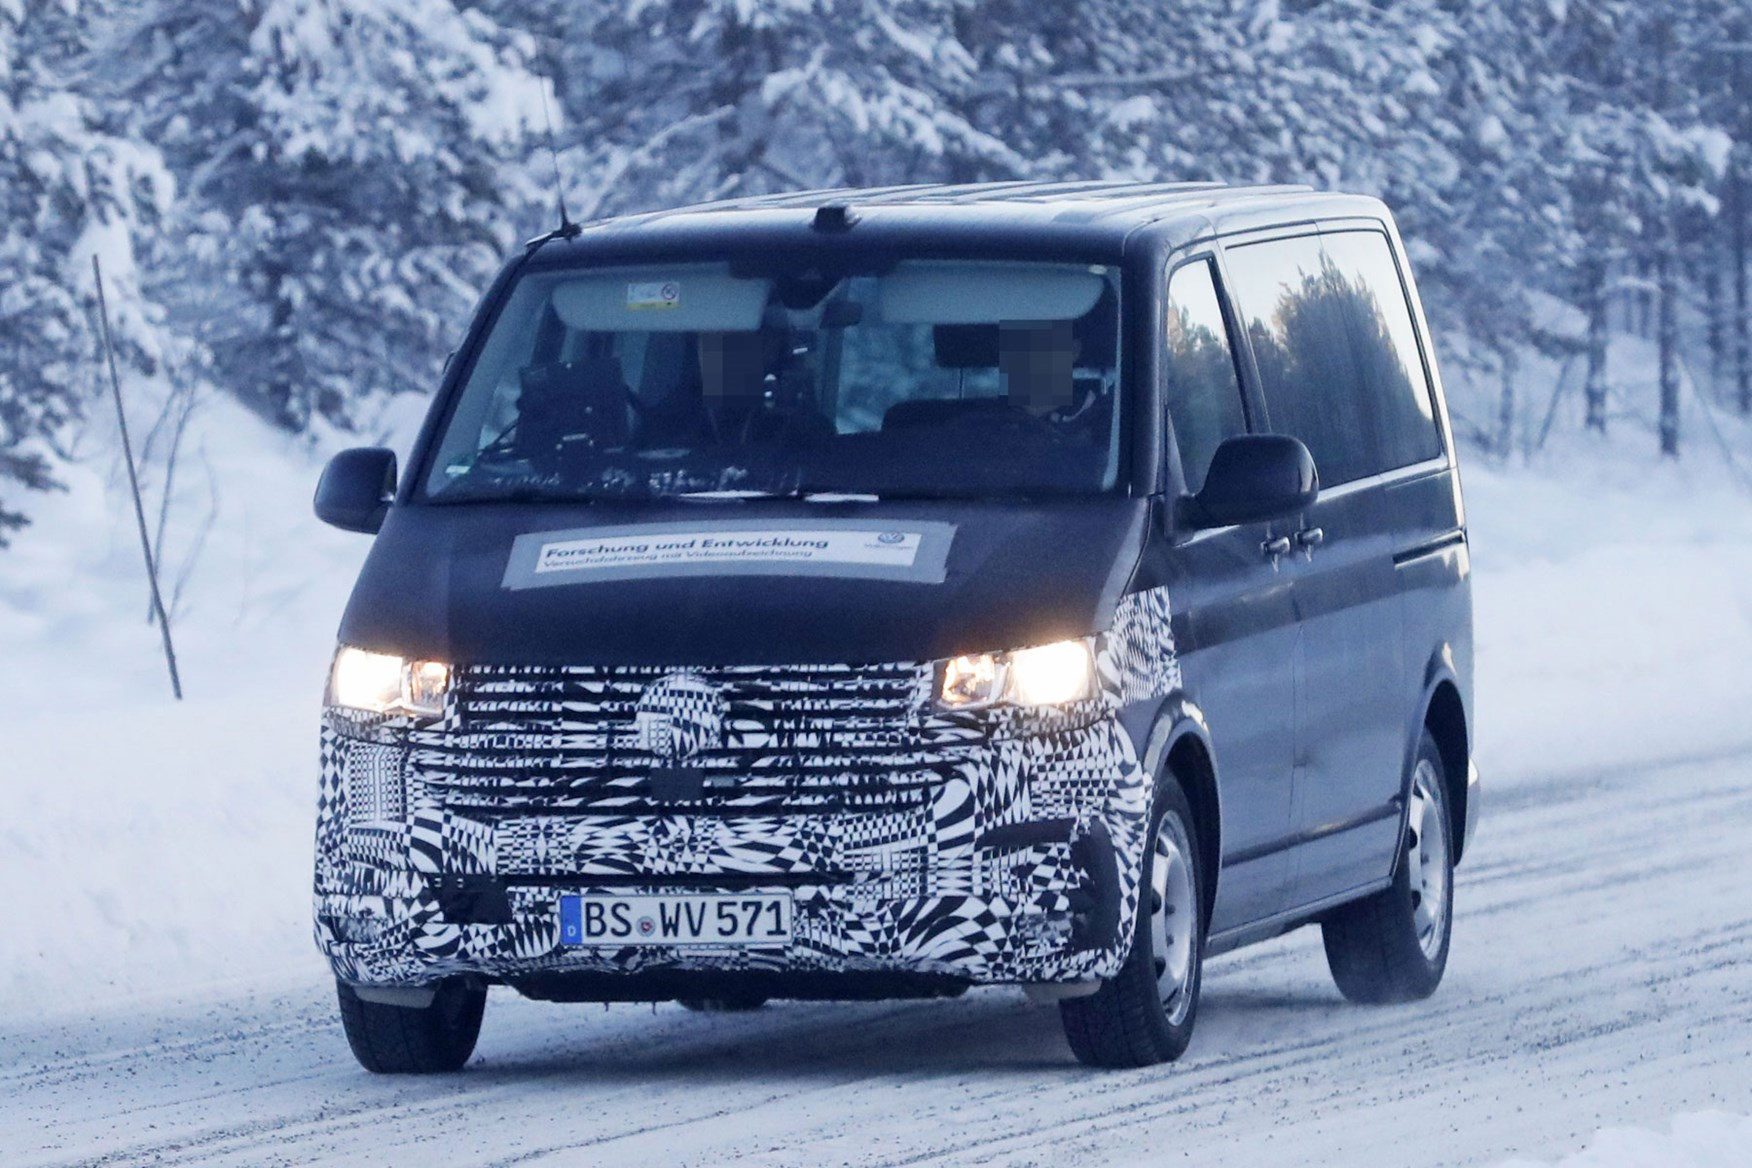 bbc047f4b9 ... Highline review - cab interior VW T6.1 facelift spy photo - prototype  winter testing driving in snow VW Transporter T6 Sportline review - kombi  ...